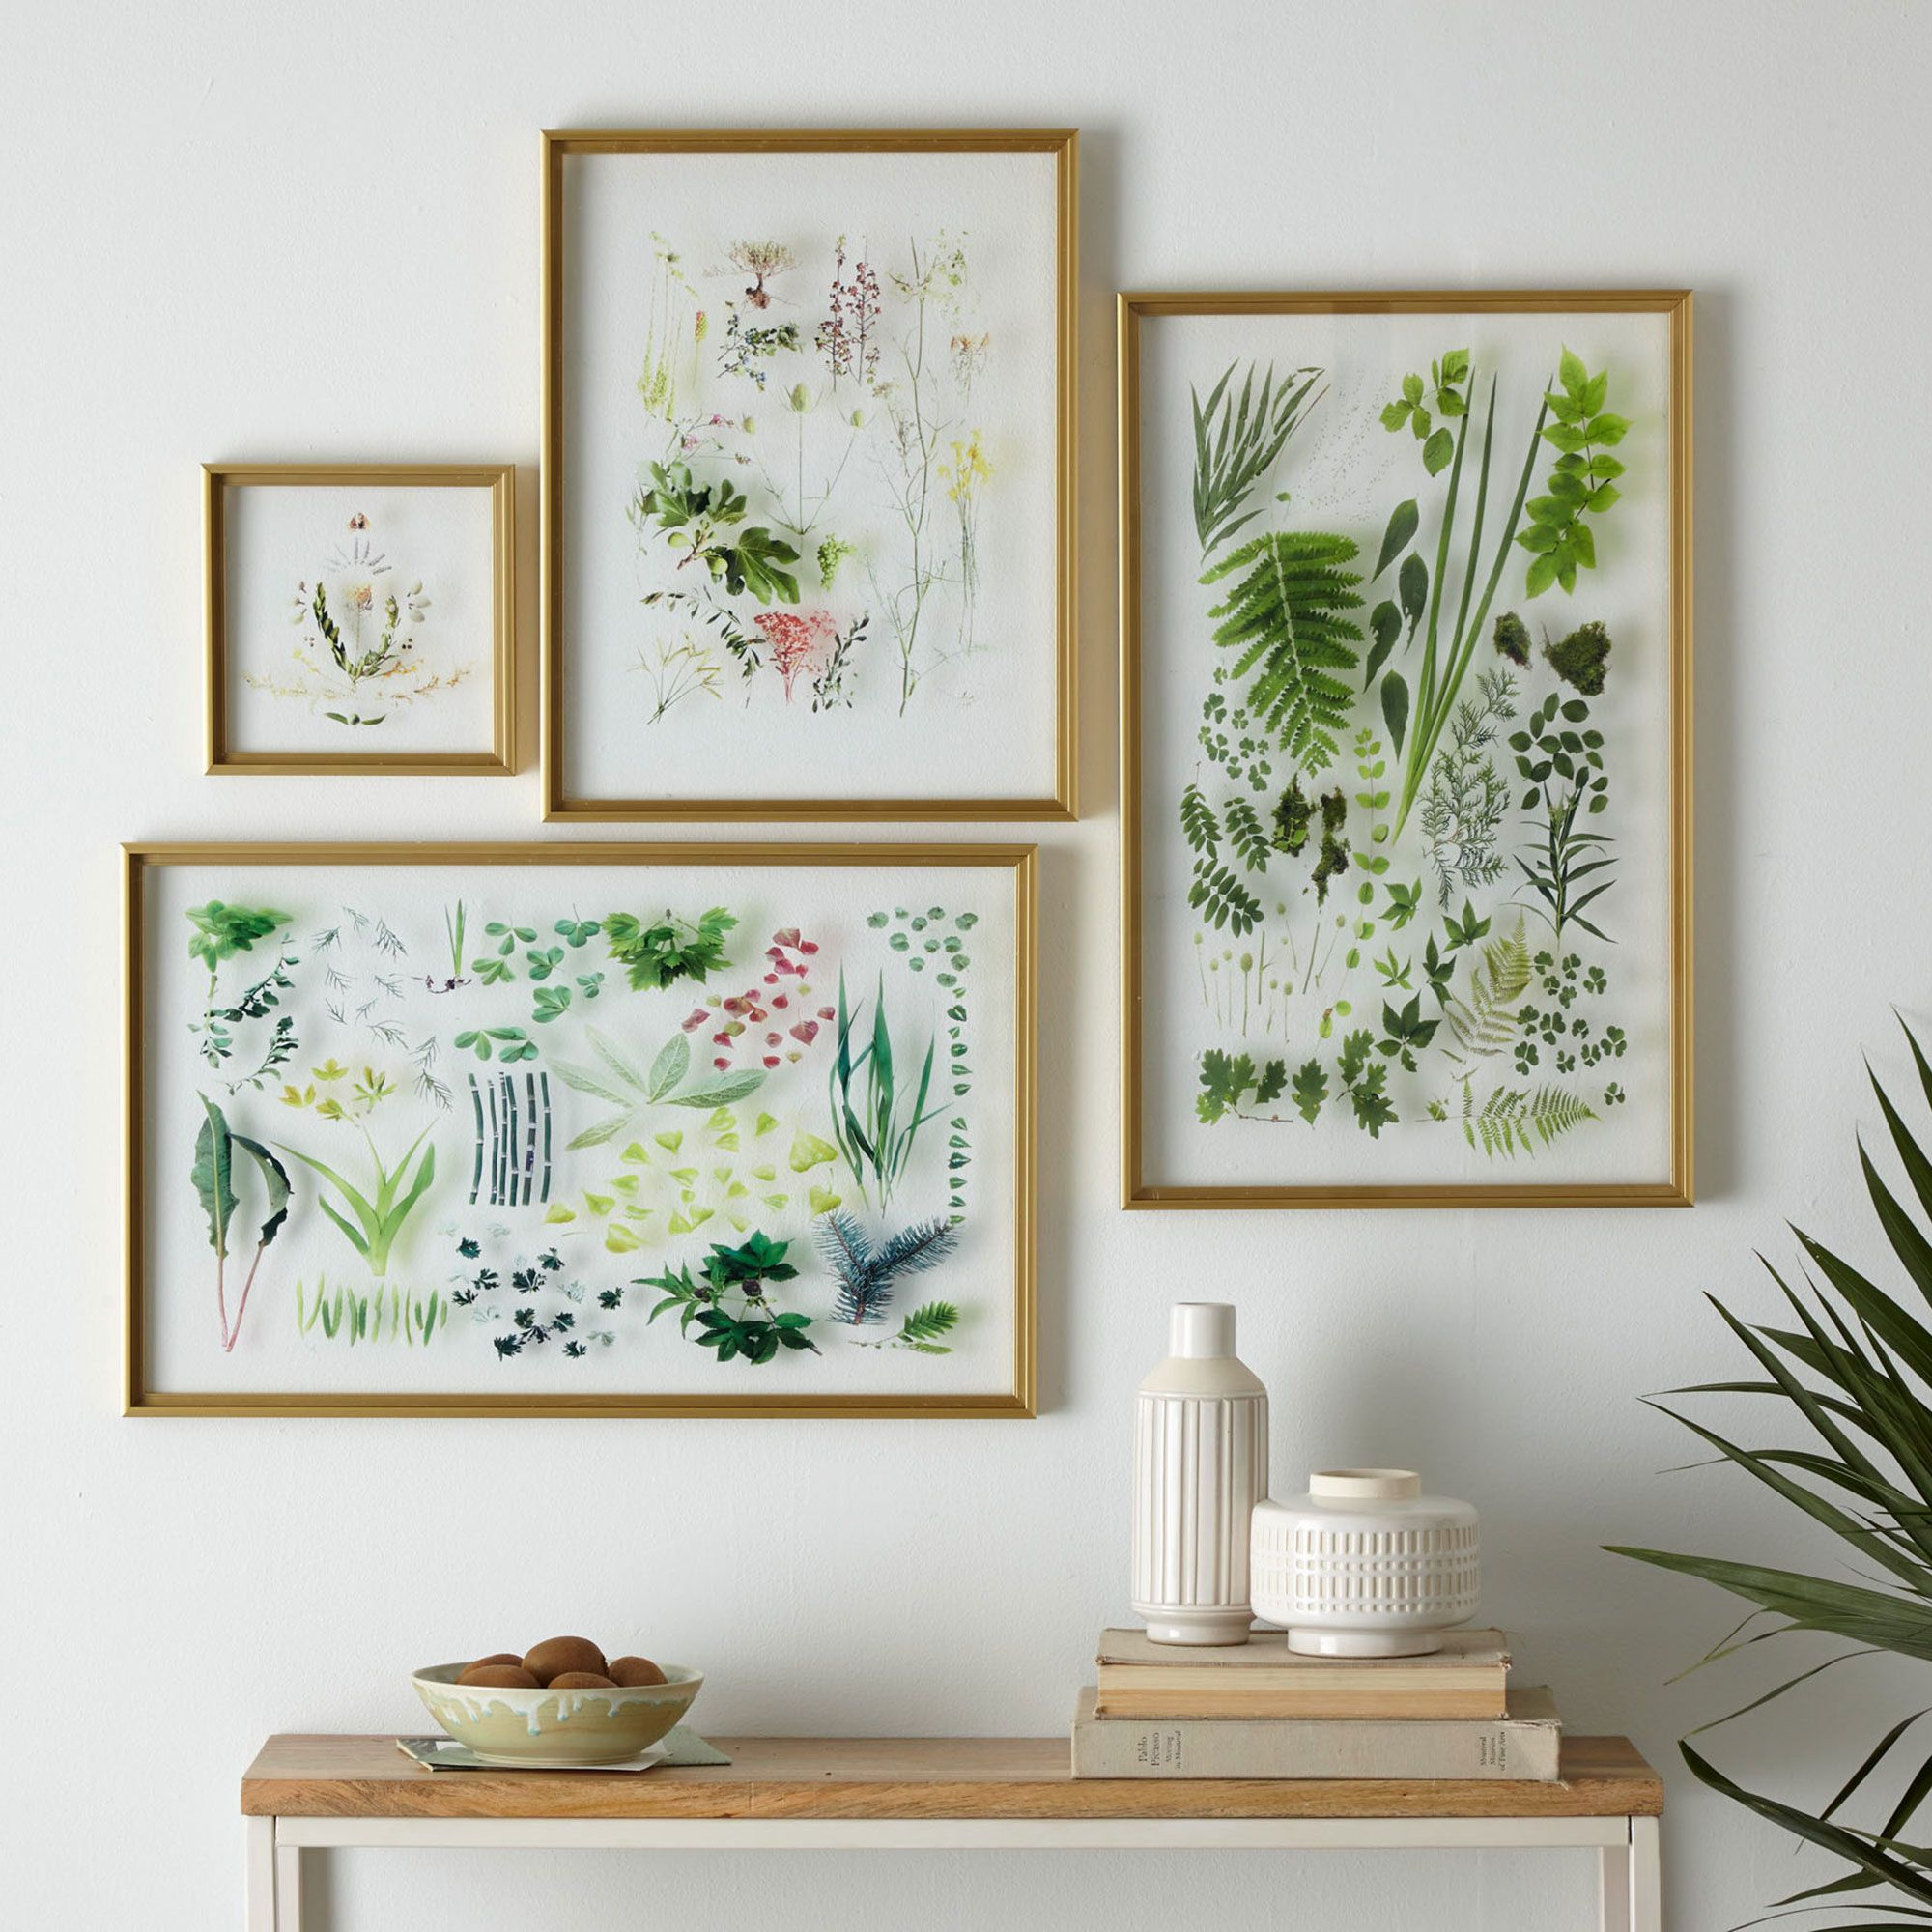 25 ways to decorate with botanical prints fern floating frame 25 ways to decorate with botanical prints fern floating frame and leaves jeuxipadfo Images